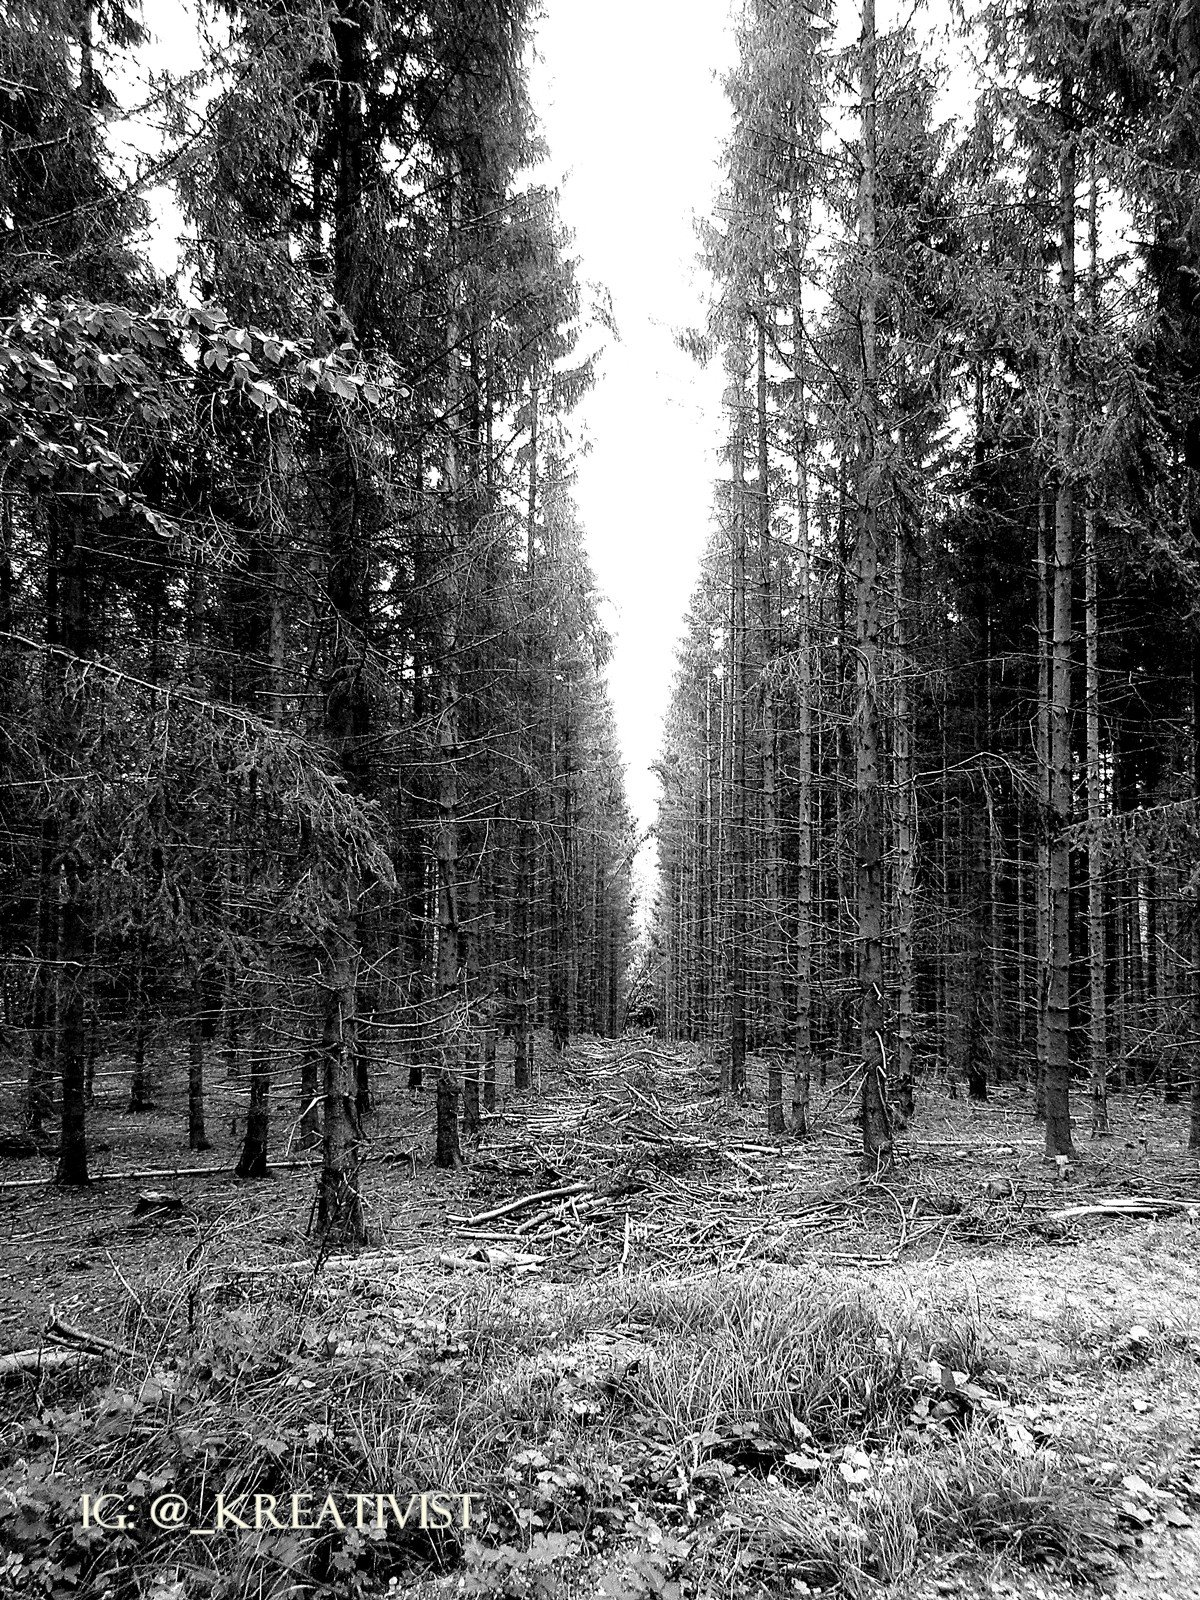 Nature Xp Wallpaper For Mobile: Forest, Nature, Dead Trees, Monochrome HD Wallpapers